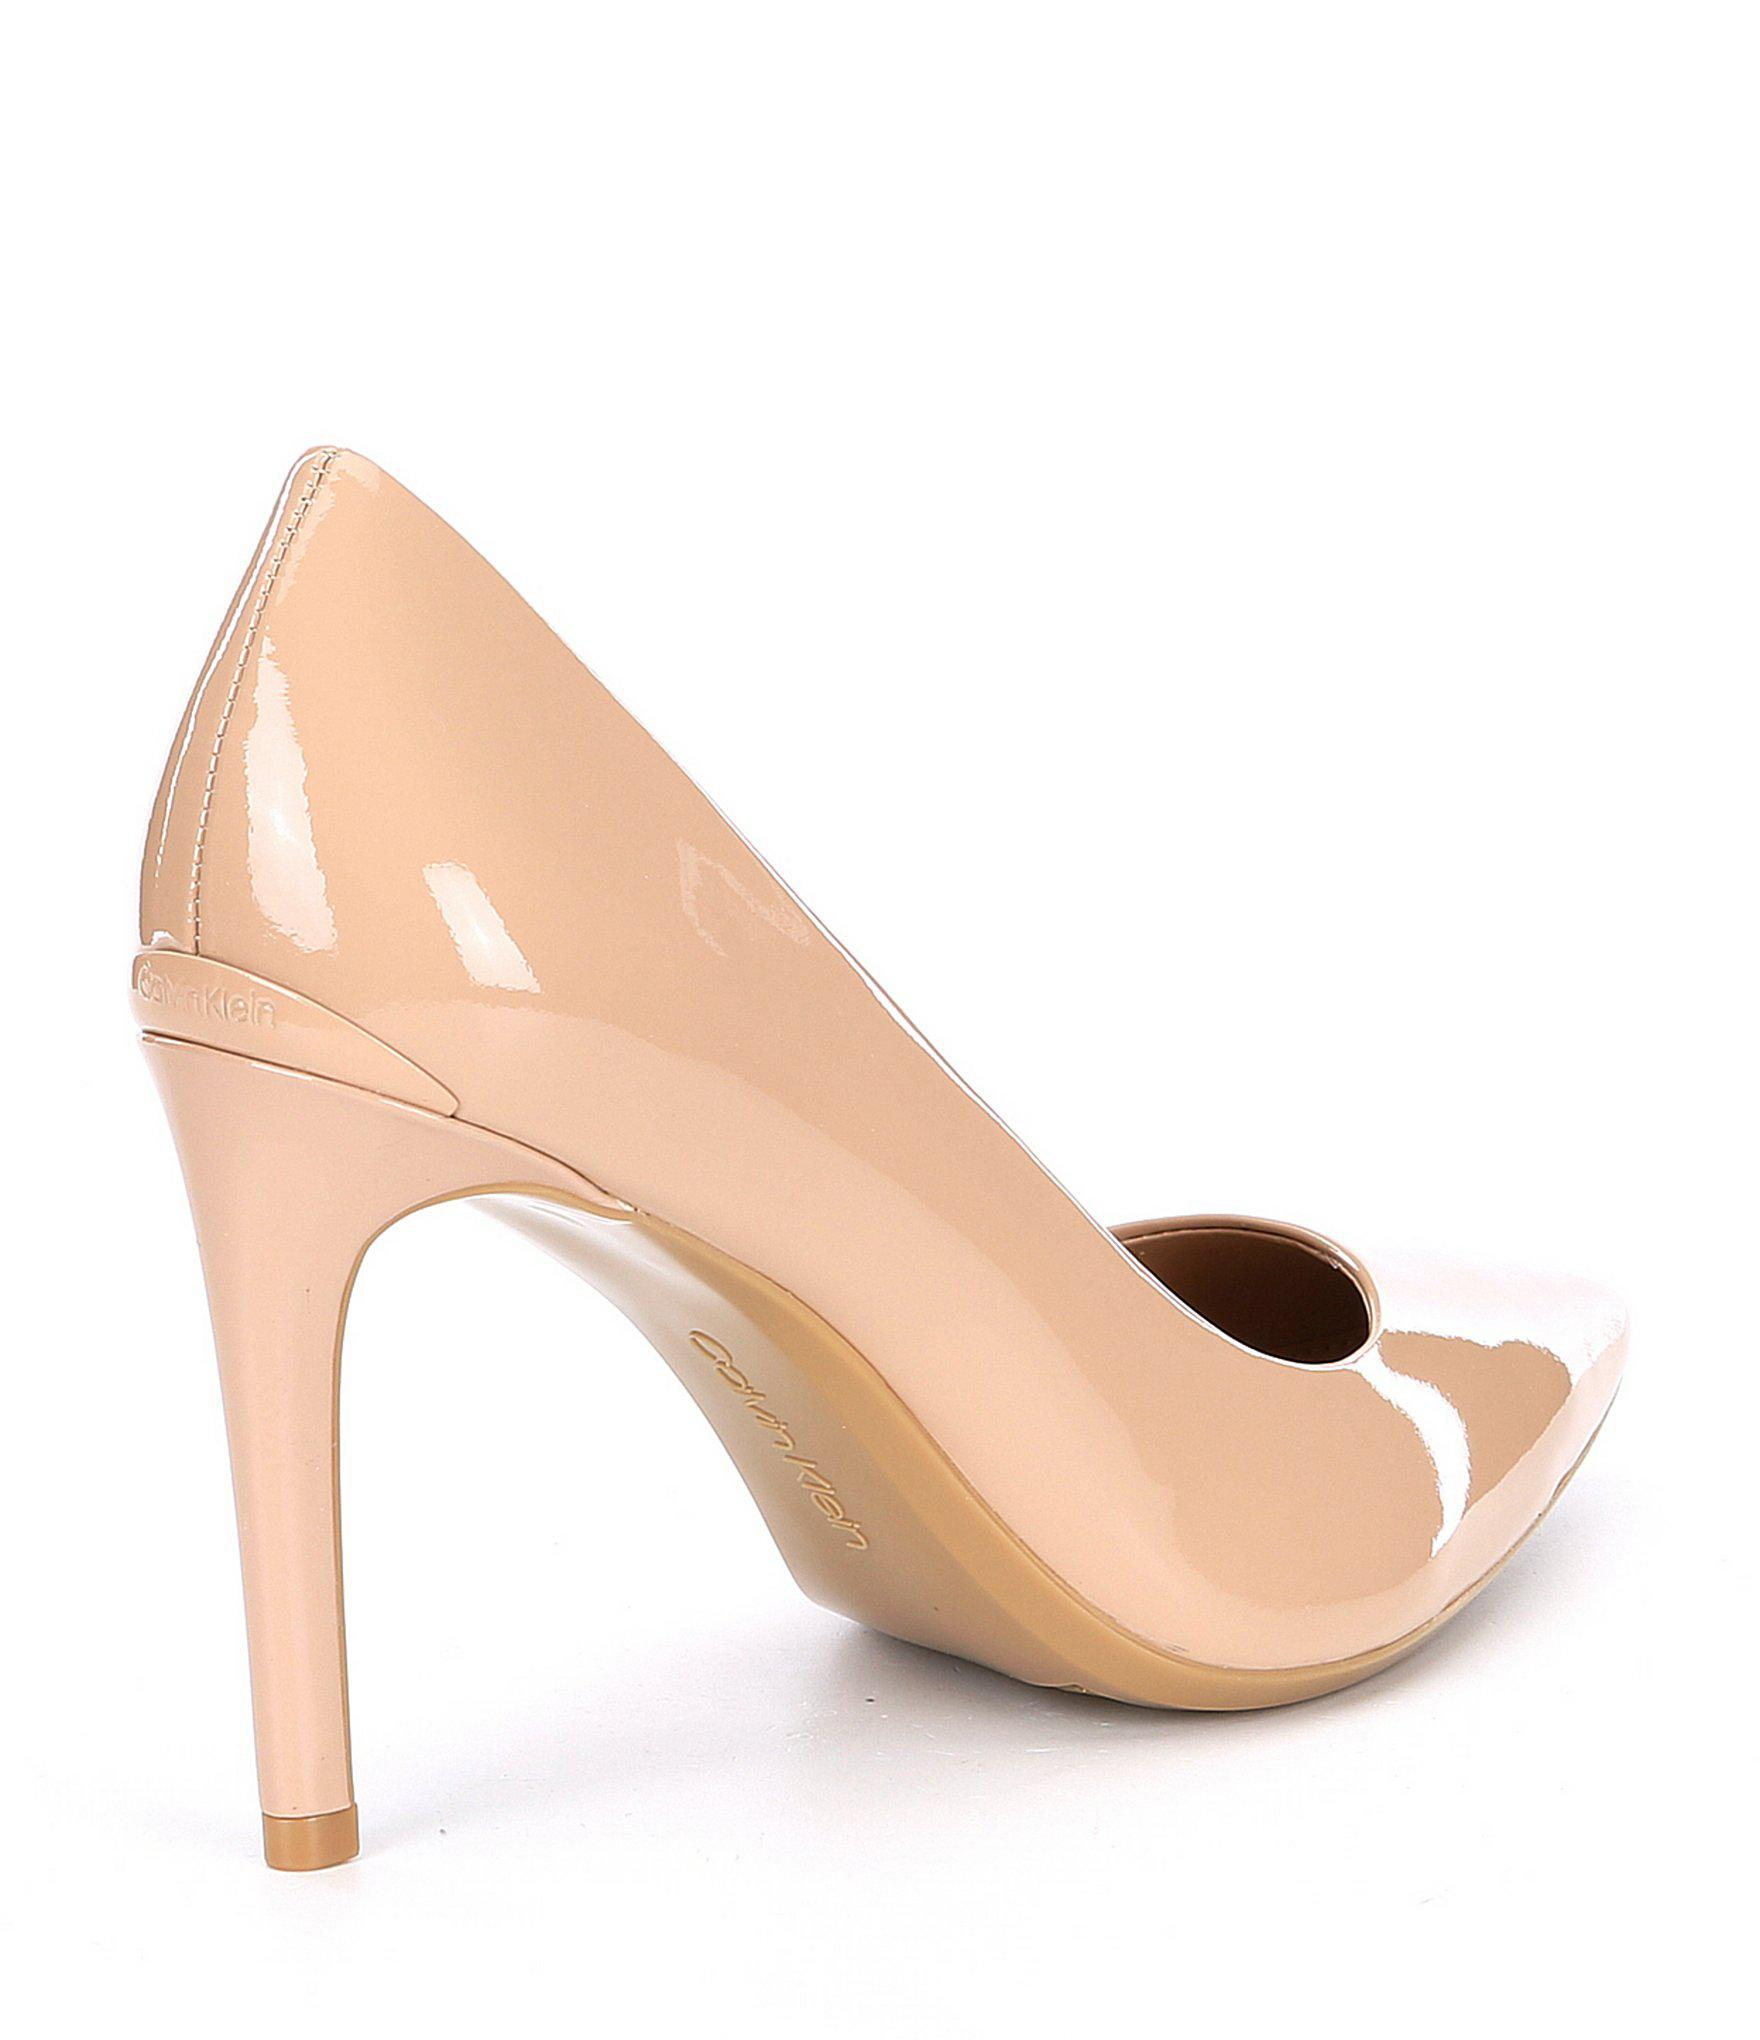 11d7cabe191 Lyst - Calvin Klein Ronna Patent Leather Pumps in Natural